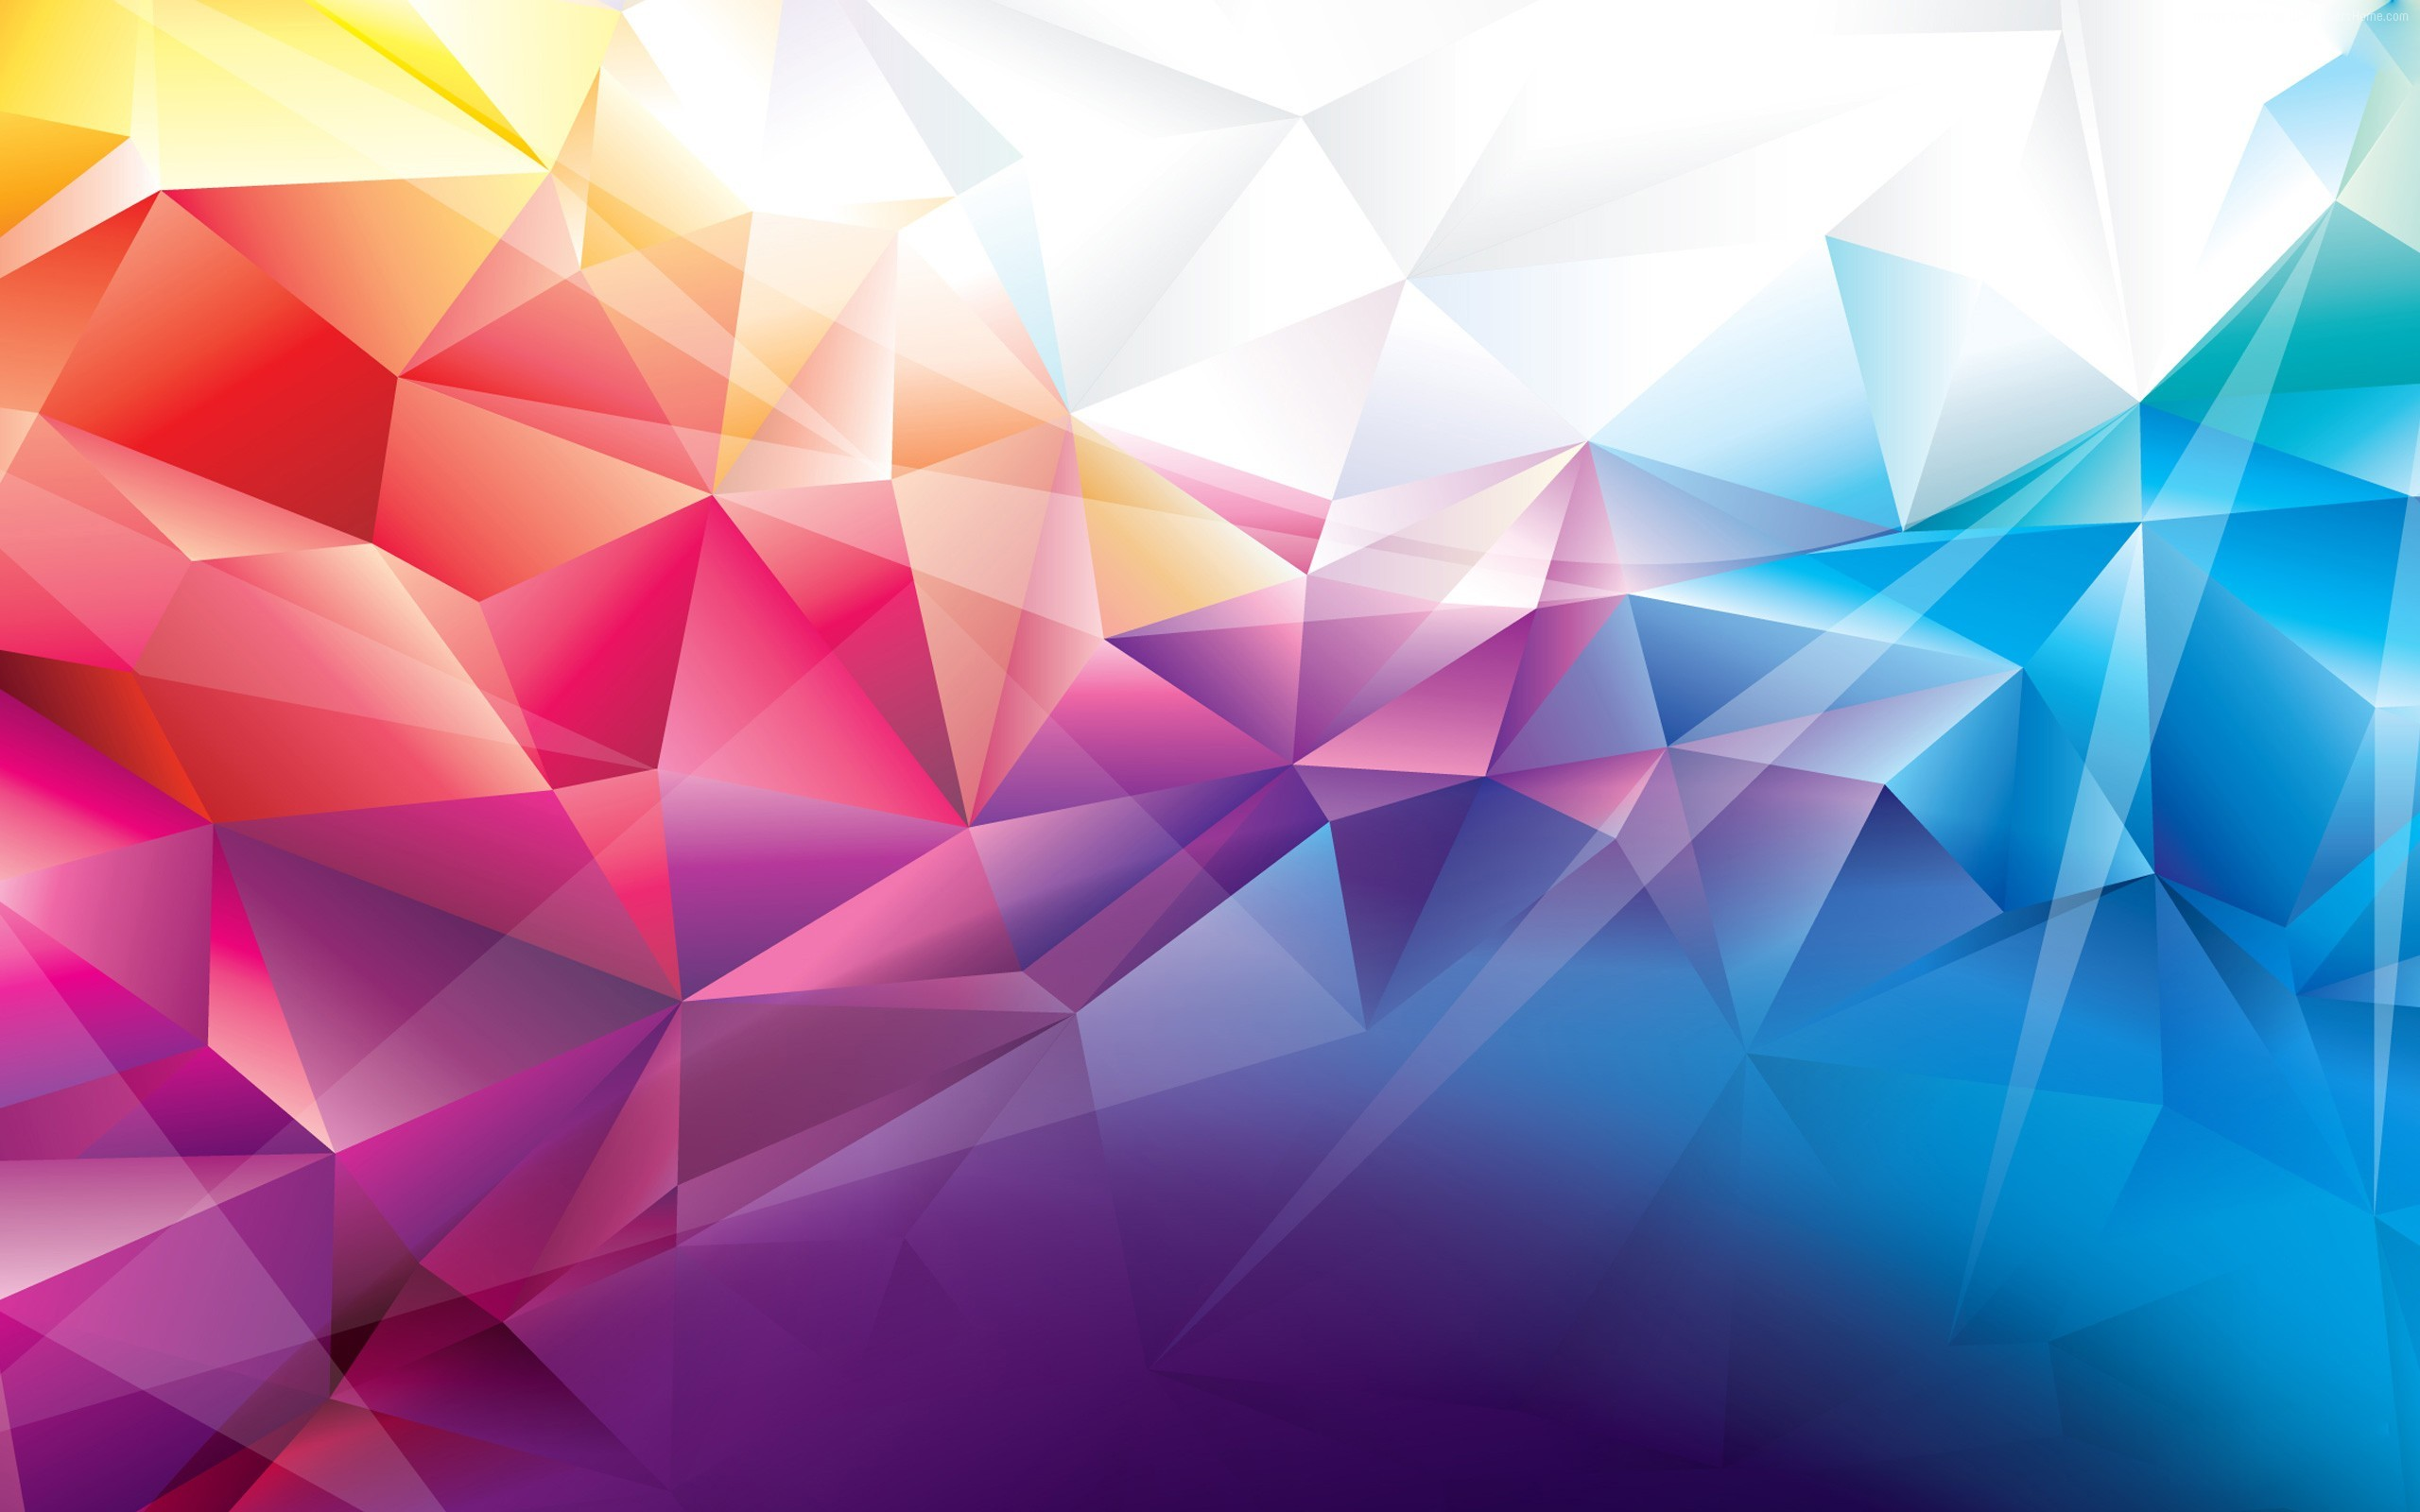 Wallpaper polygon, 4k, HD wallpaper, orange, red, blue, background,  pattern, Abstract #225. Bring some HD wallpapers into your life with  WallpapersHome!